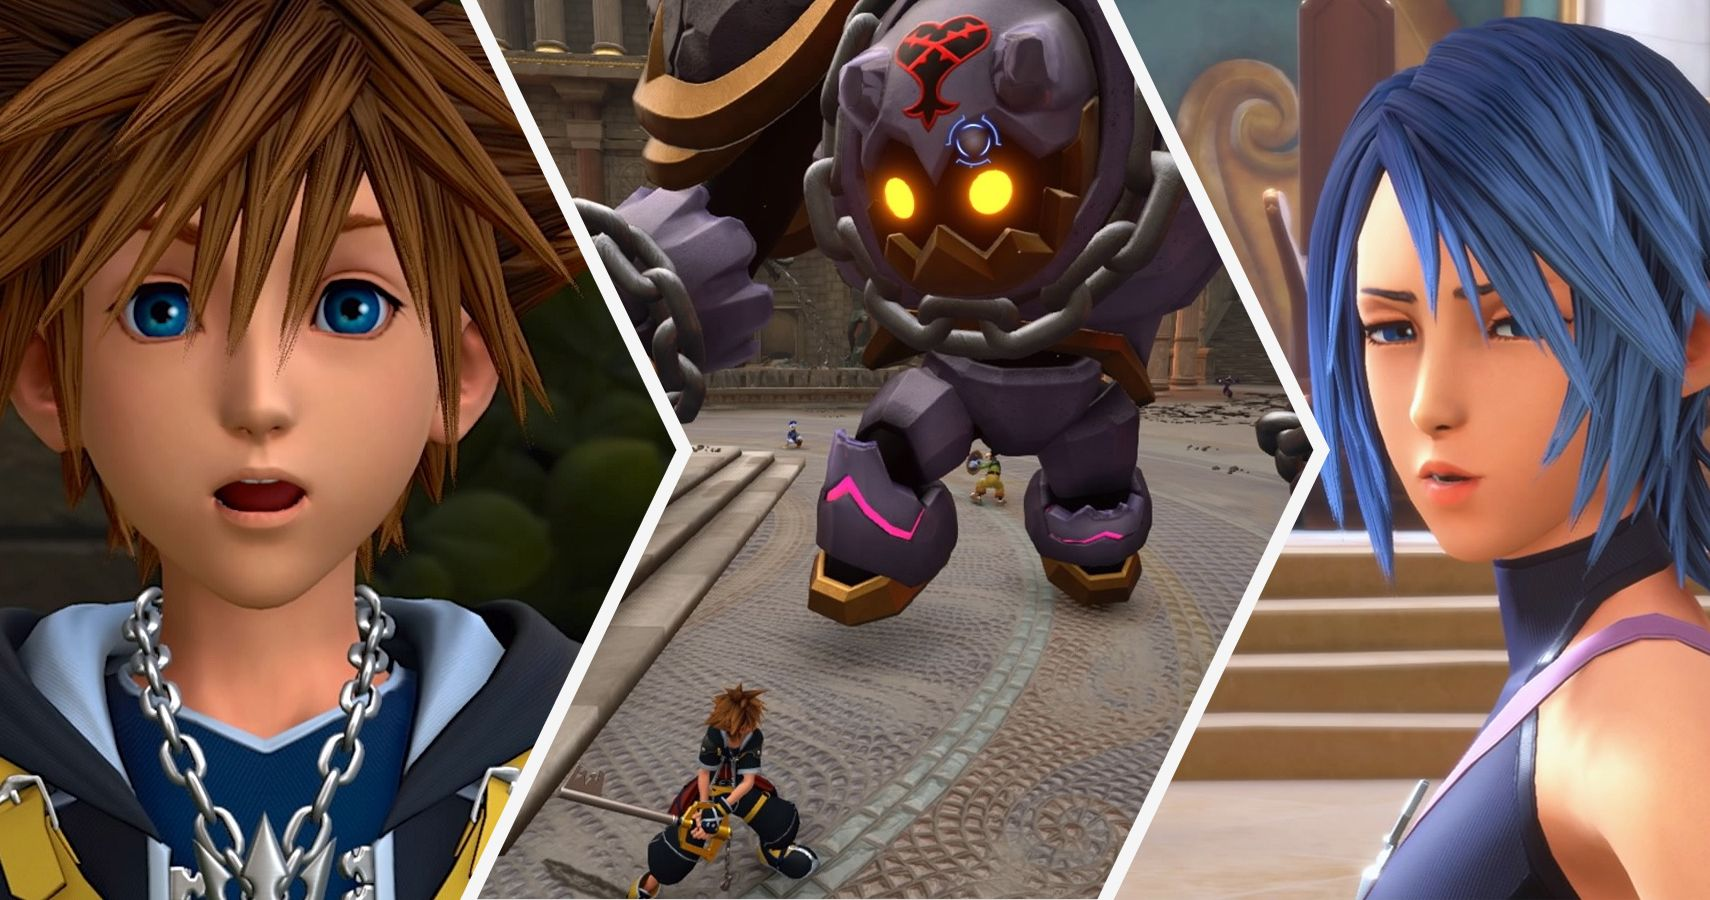 The 20 Worst Things About Kingdom Hearts 3 (And The 10 Best)